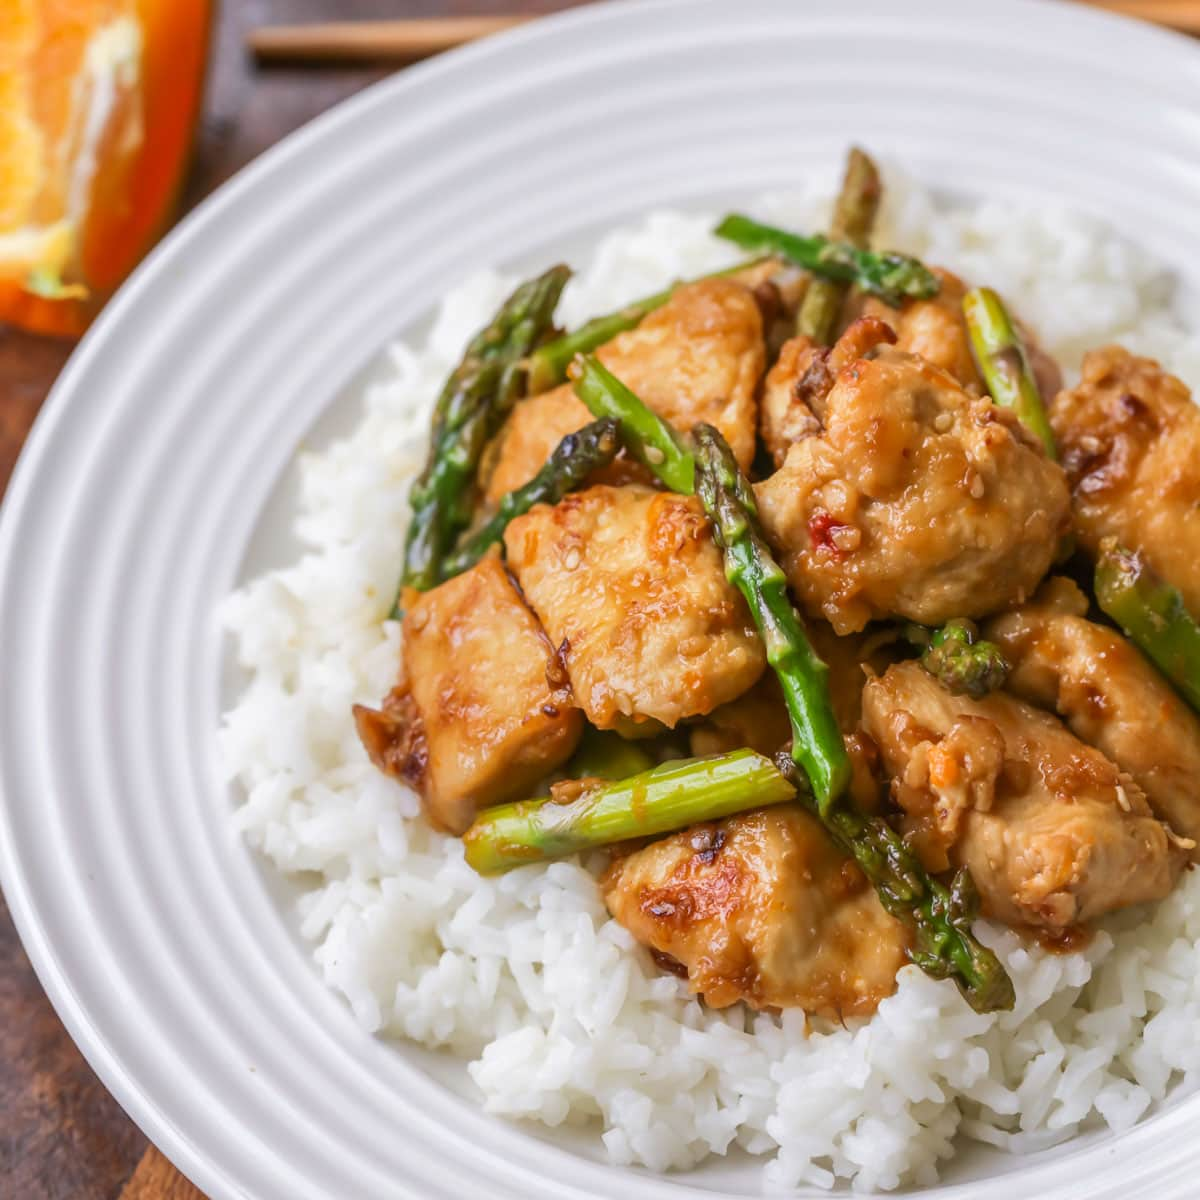 Orange chicken and asparagus served over white rice